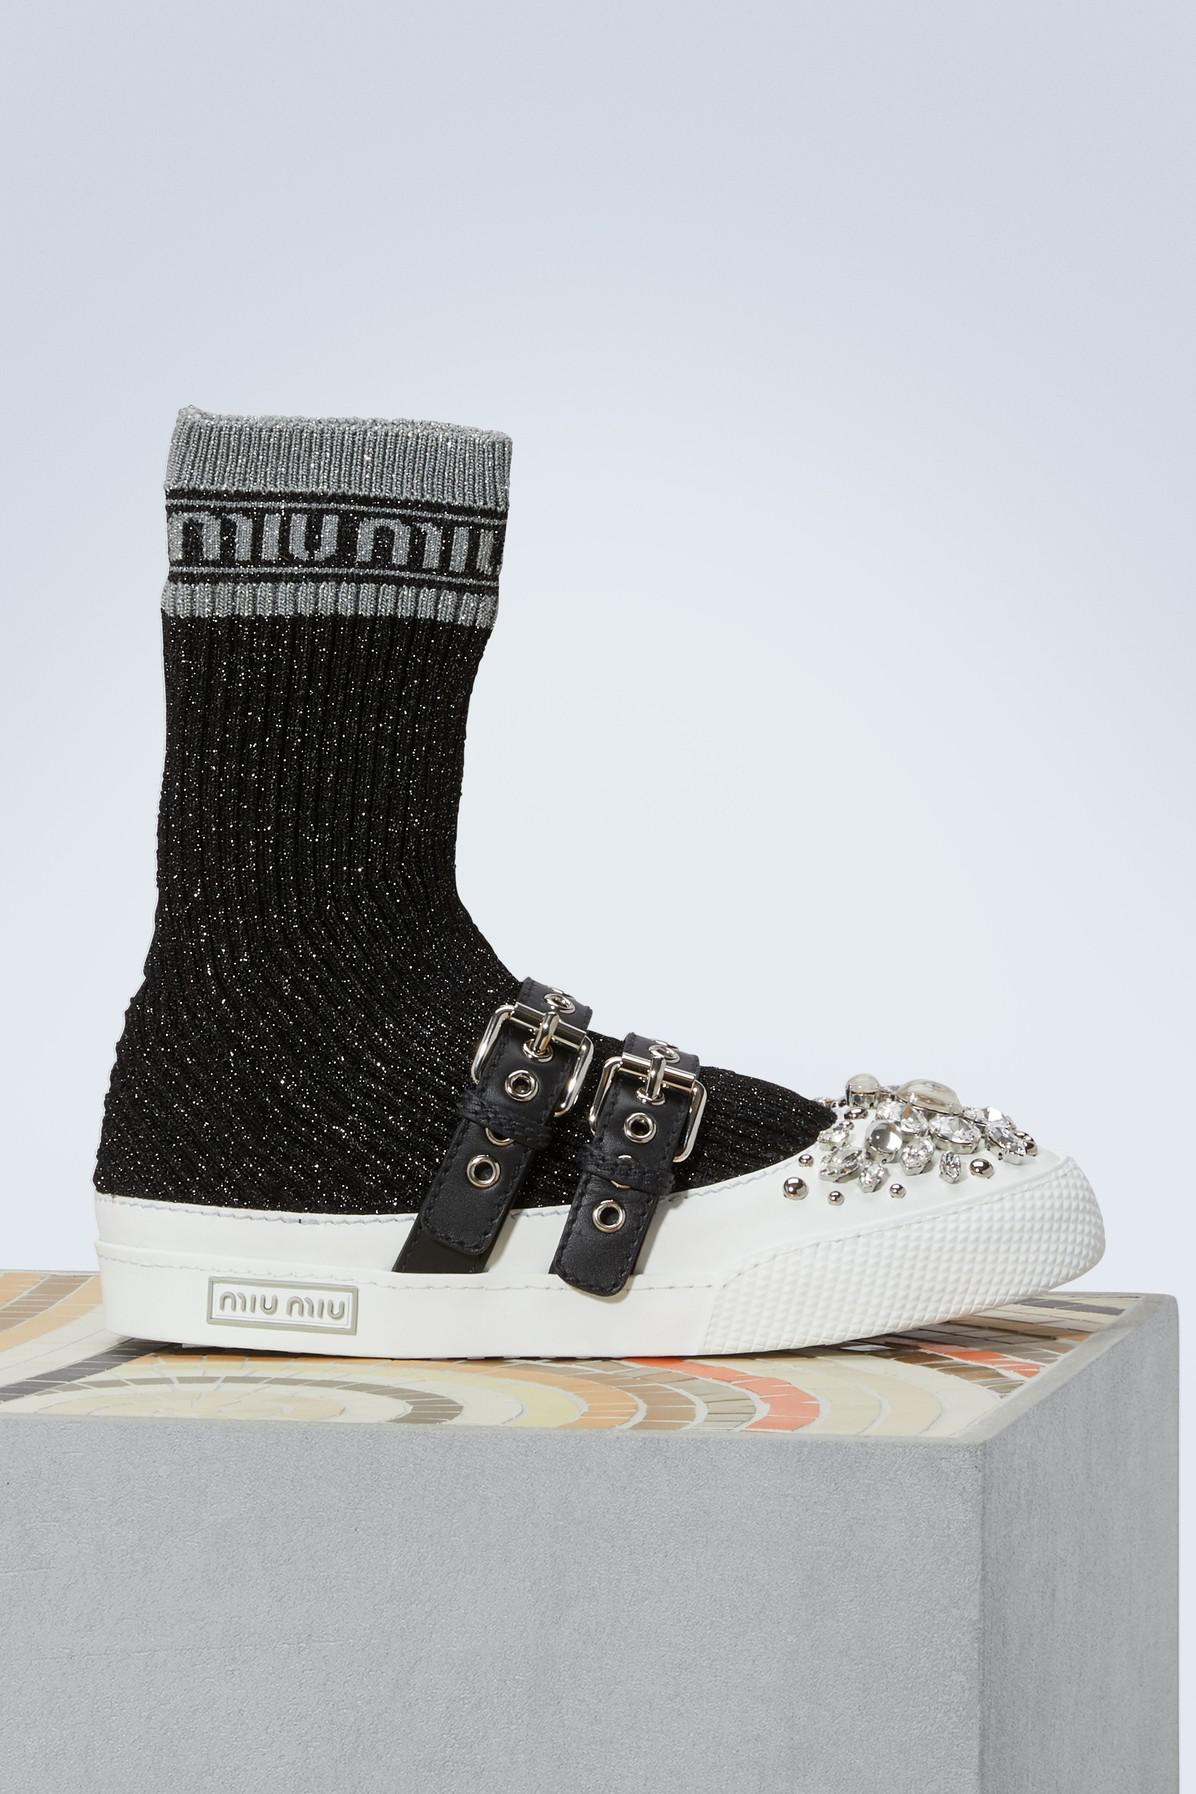 Miu sole socks sneakers Miu Miu xX518xeek